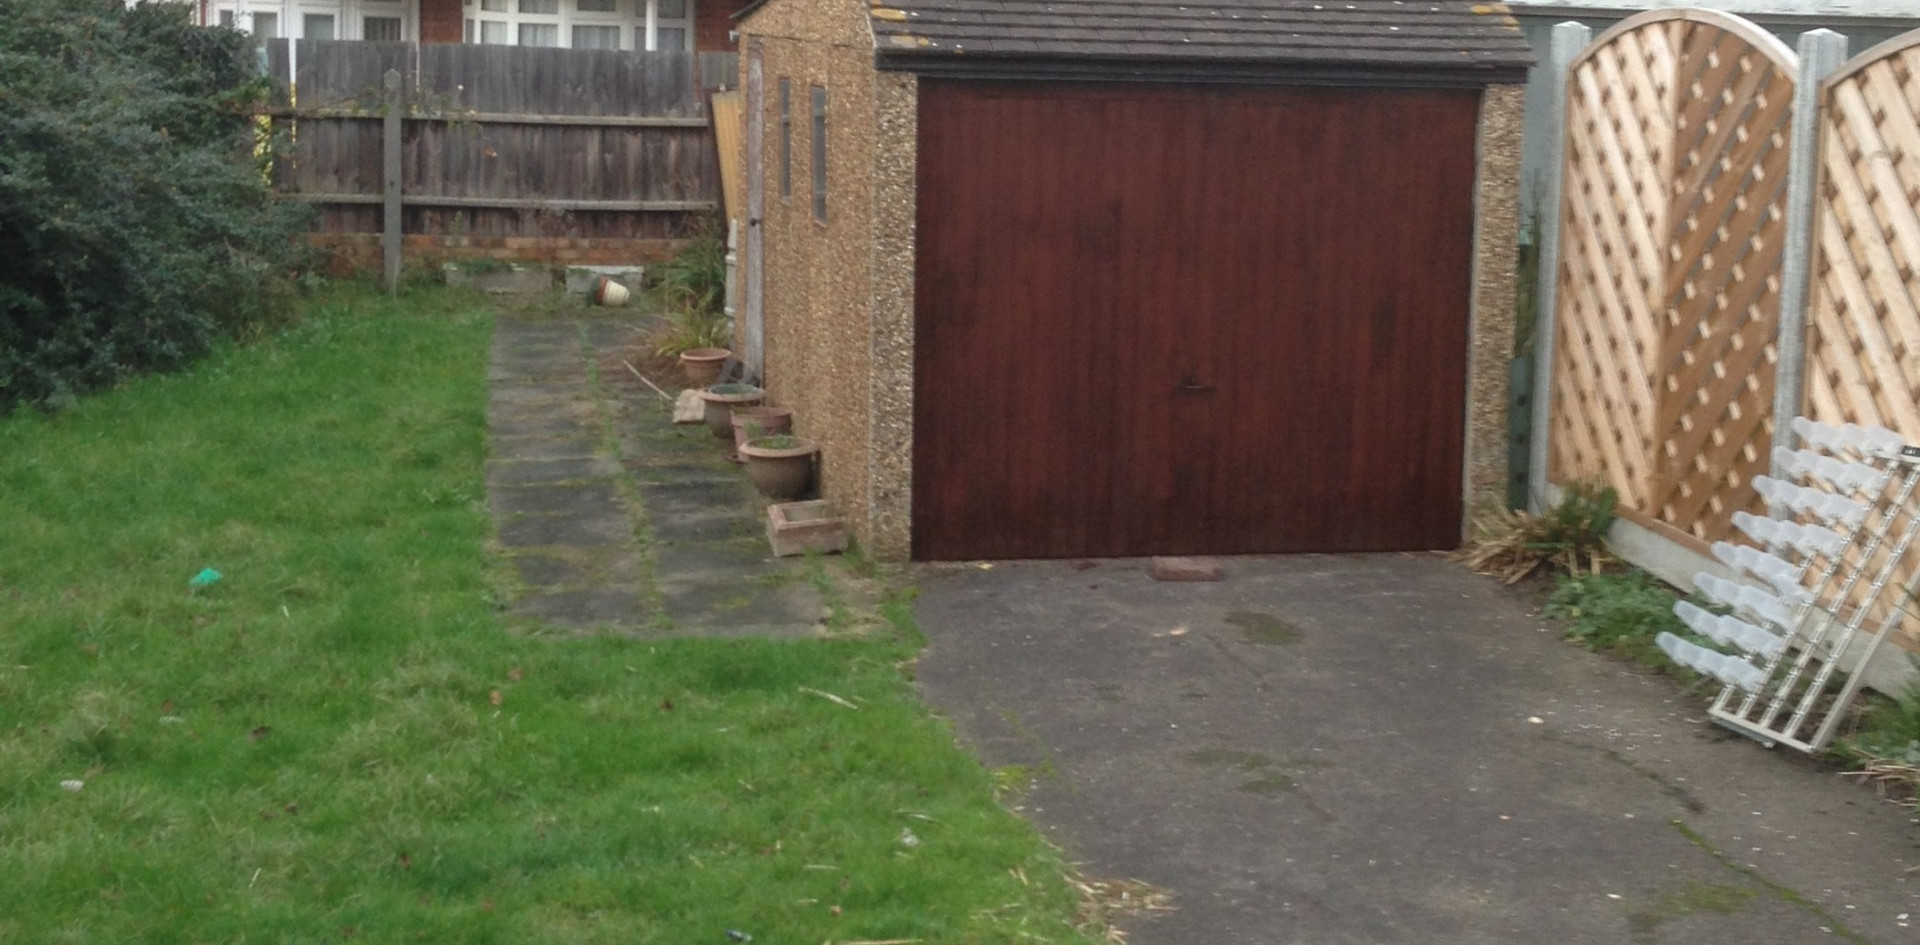 Garden driveway and patio slabs